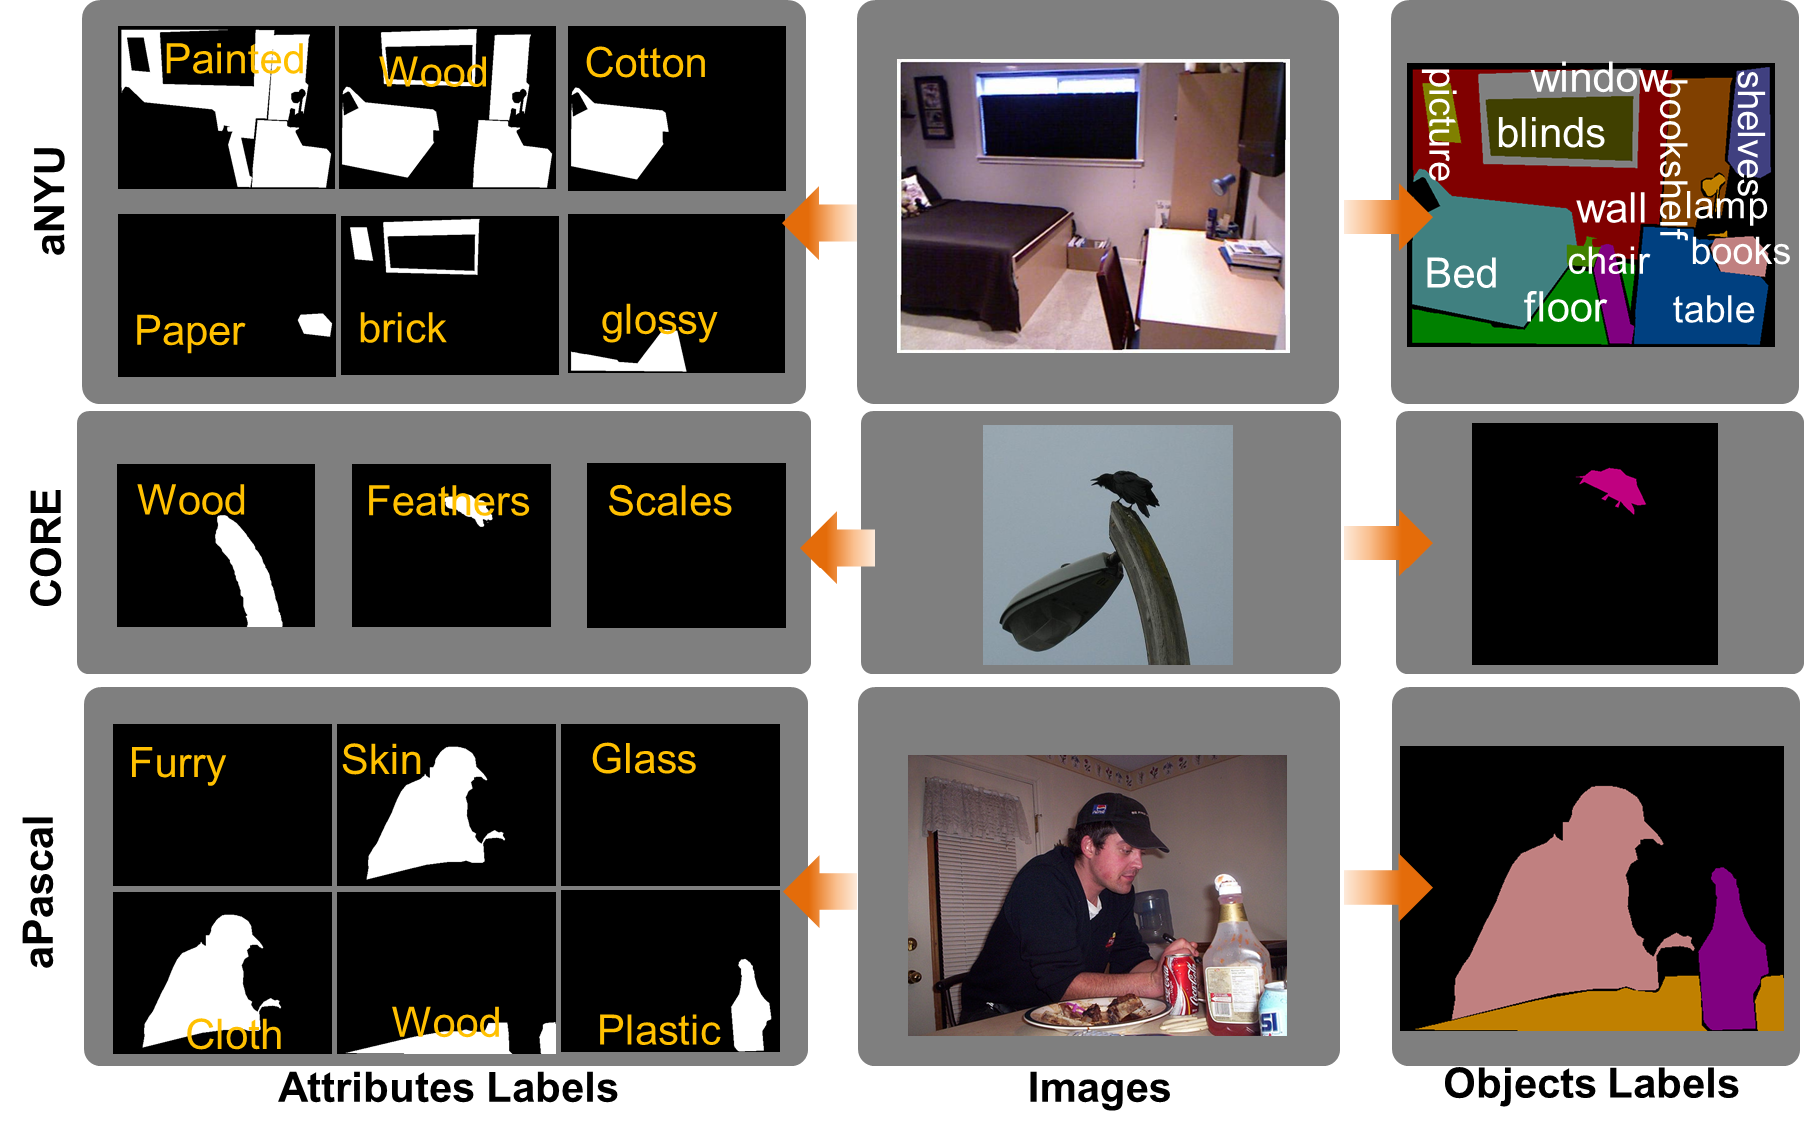 Dense Semantic Image Segmentation with Objects and